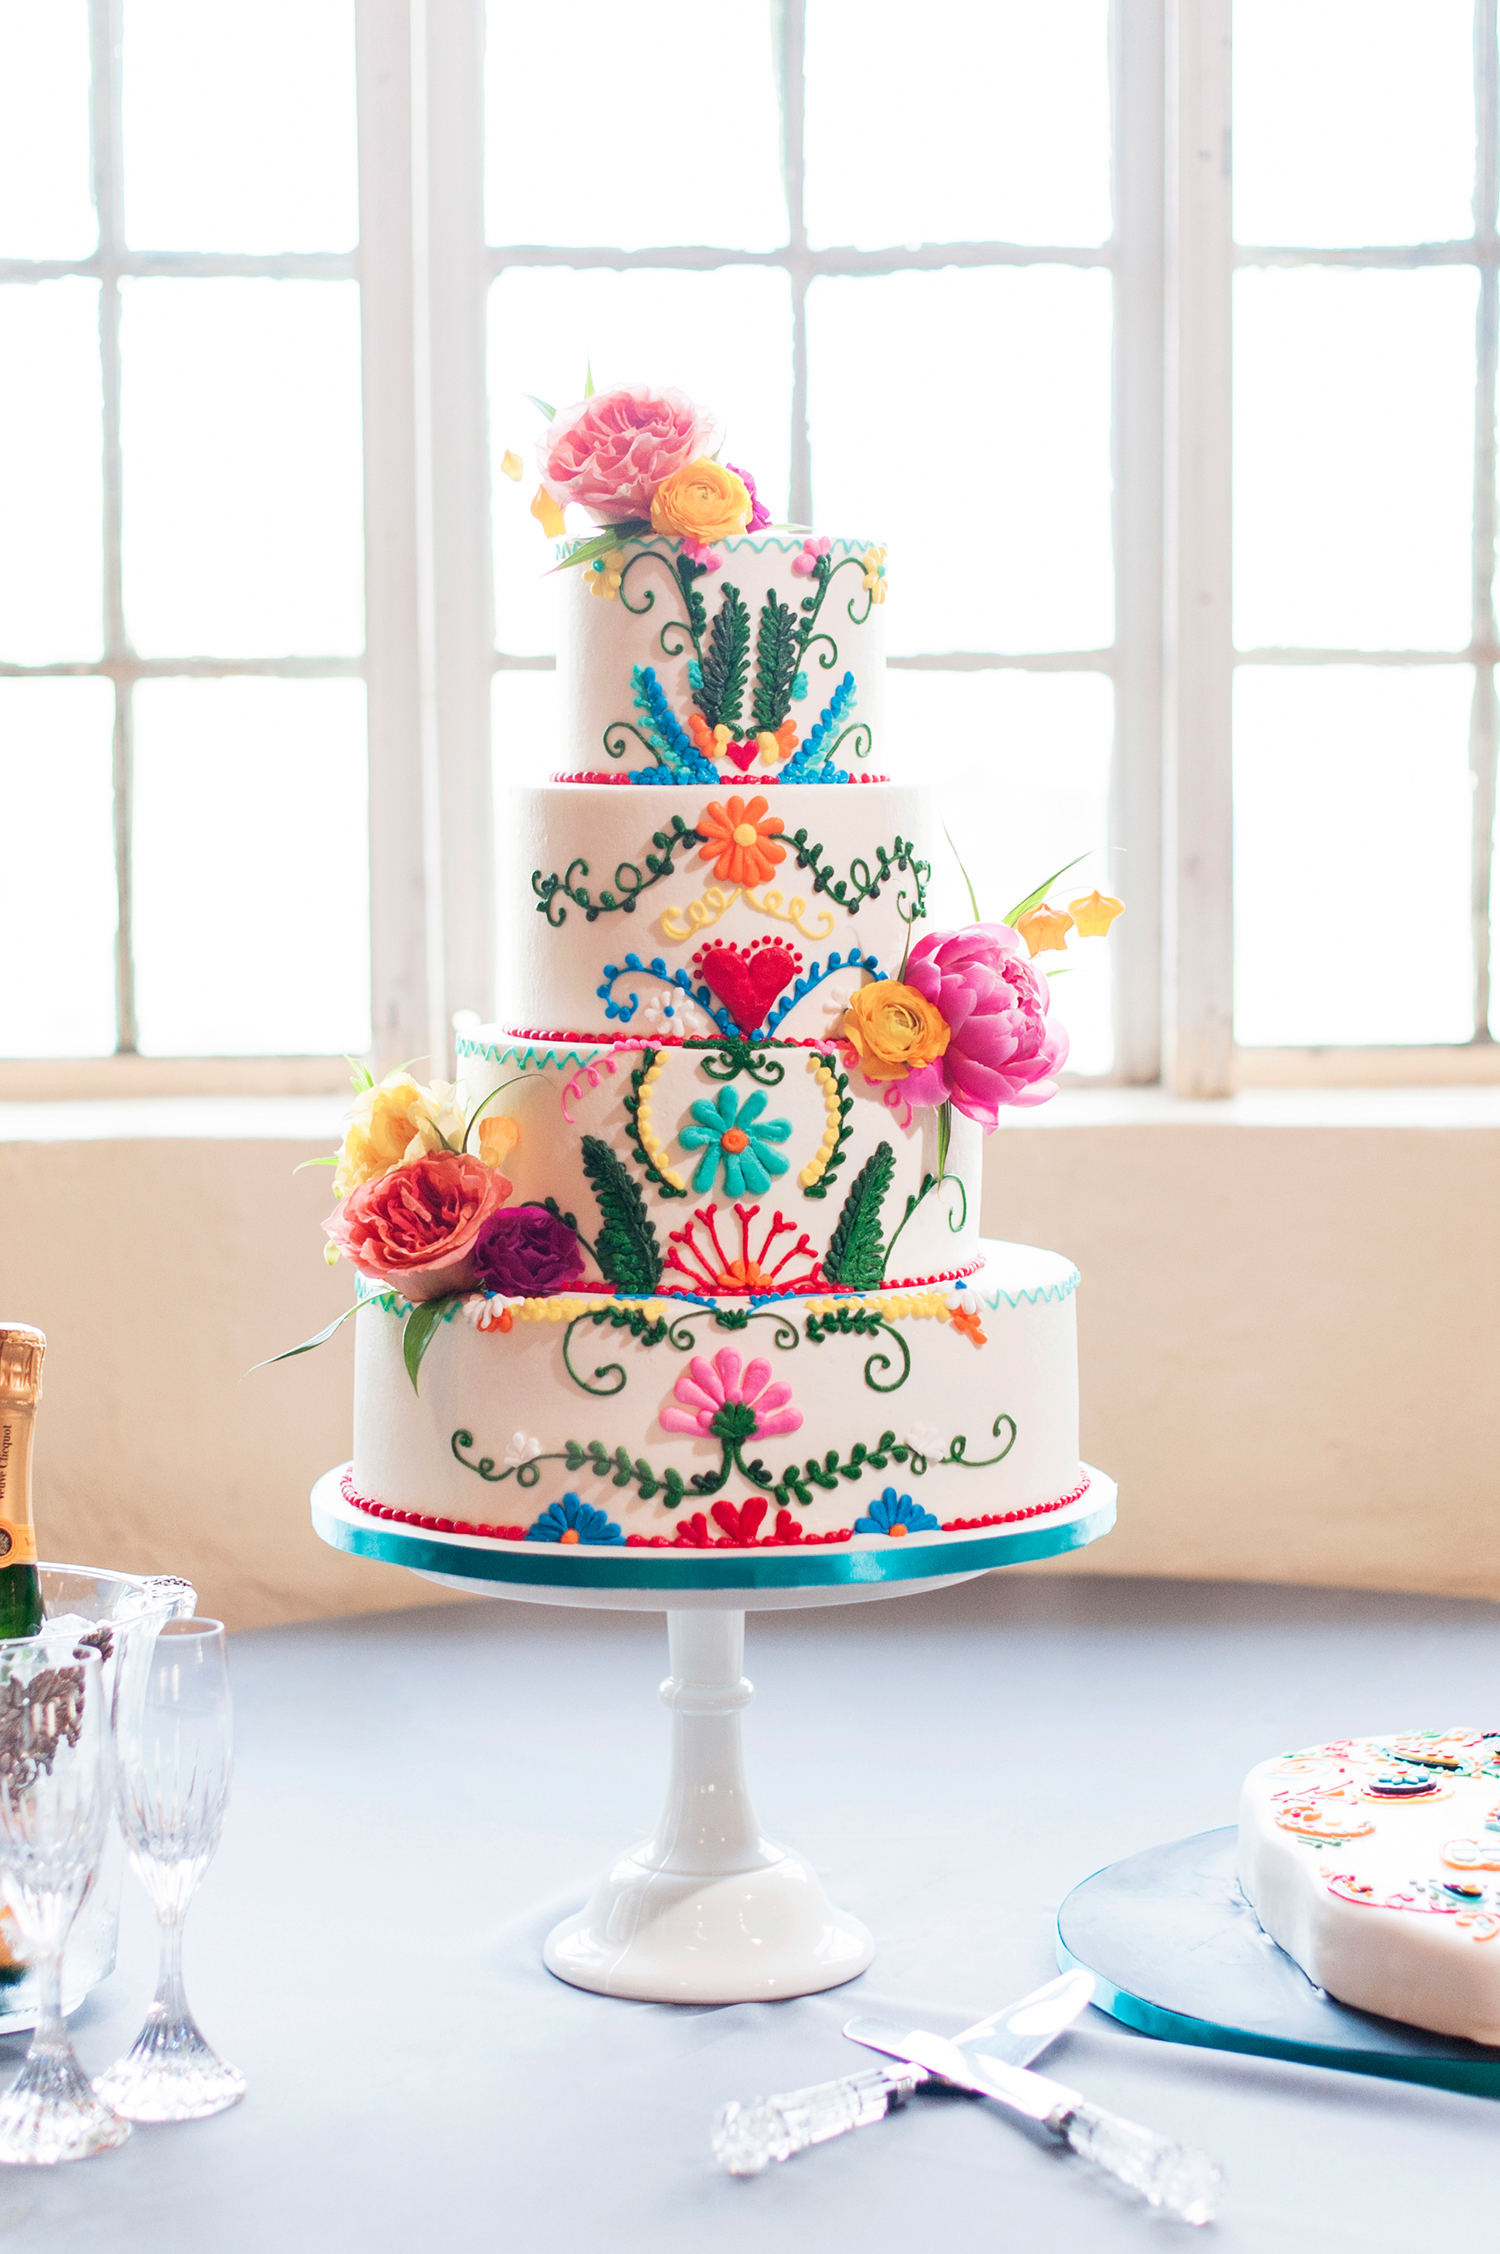 neon wedding cake with colorful floral design